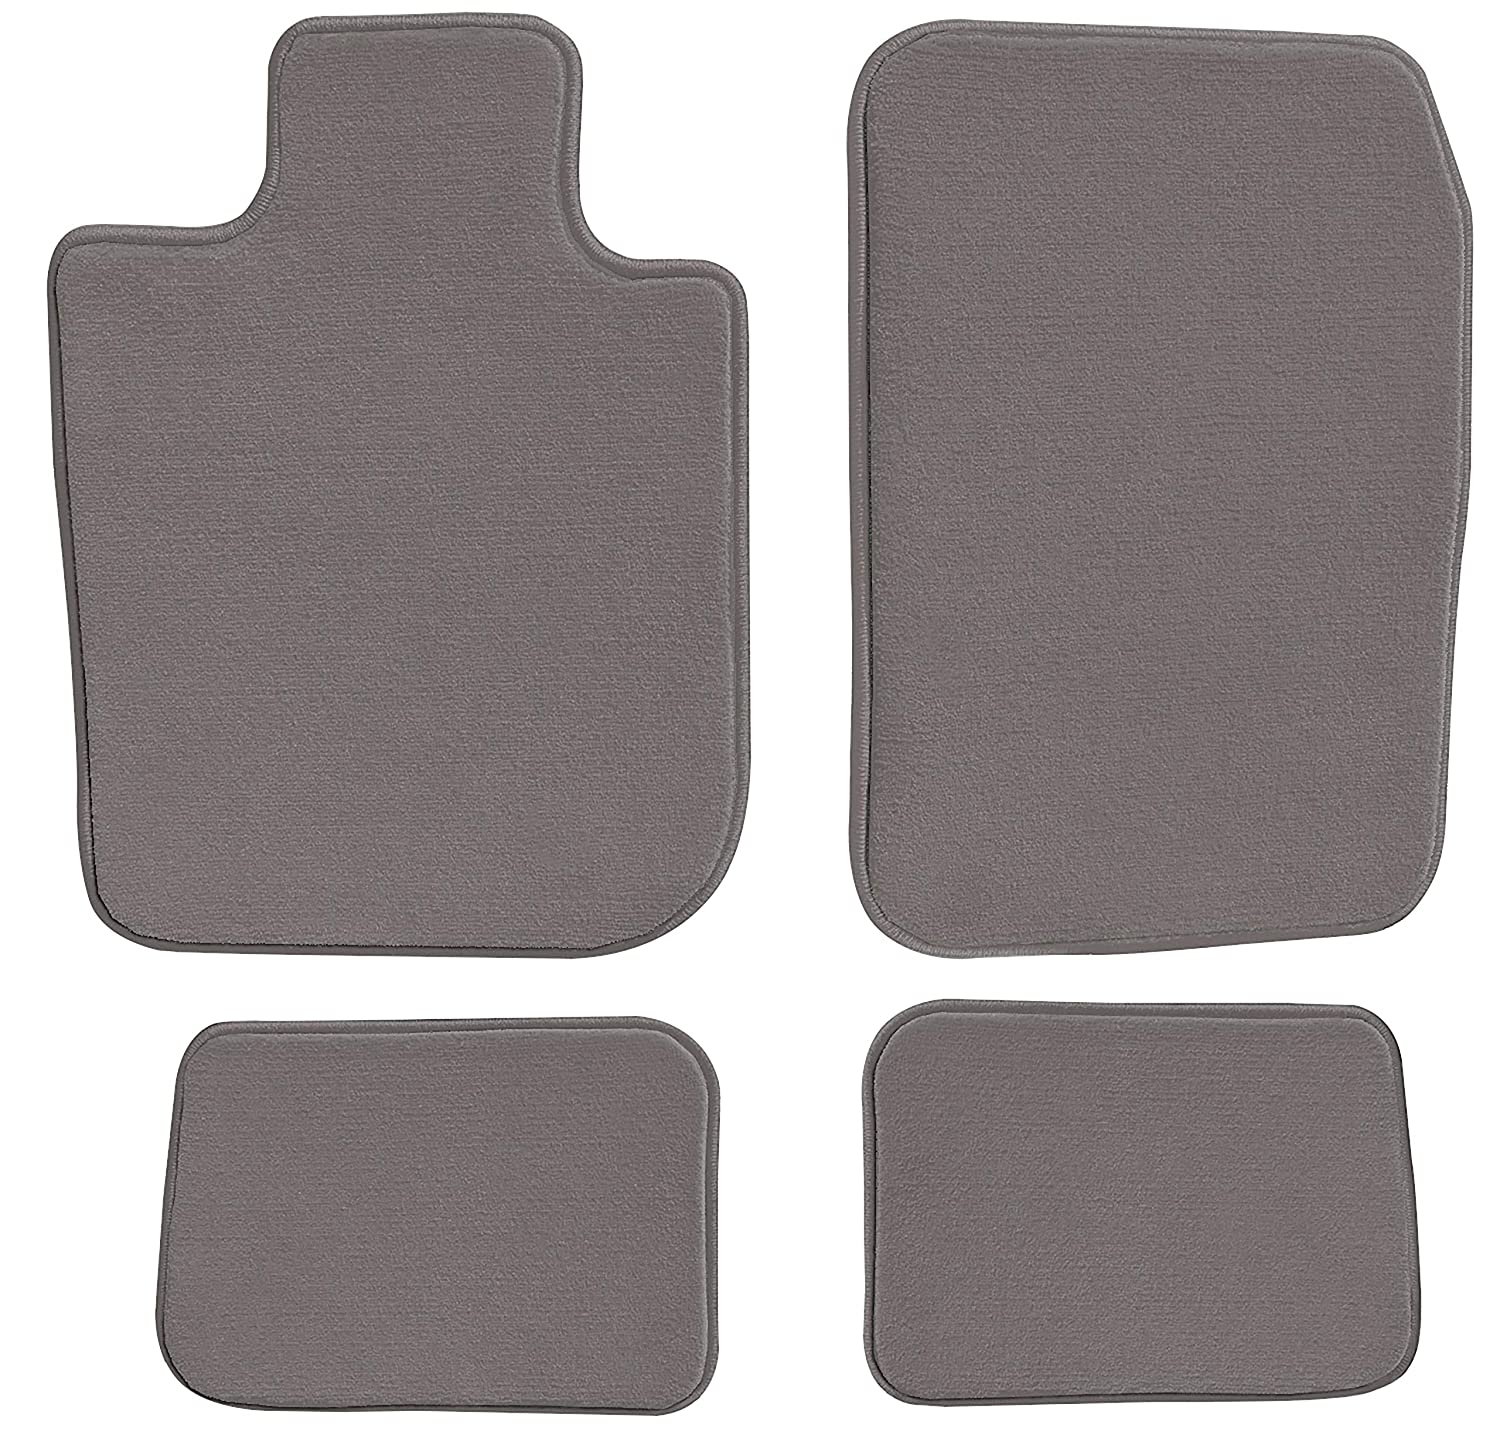 2005 2007 Buick Rainier Grey Loop Driver Passenger /& Rear Floor GGBAILEY D4408A-S1A-GY-LP Custom Fit Car Mats for 2004 2006